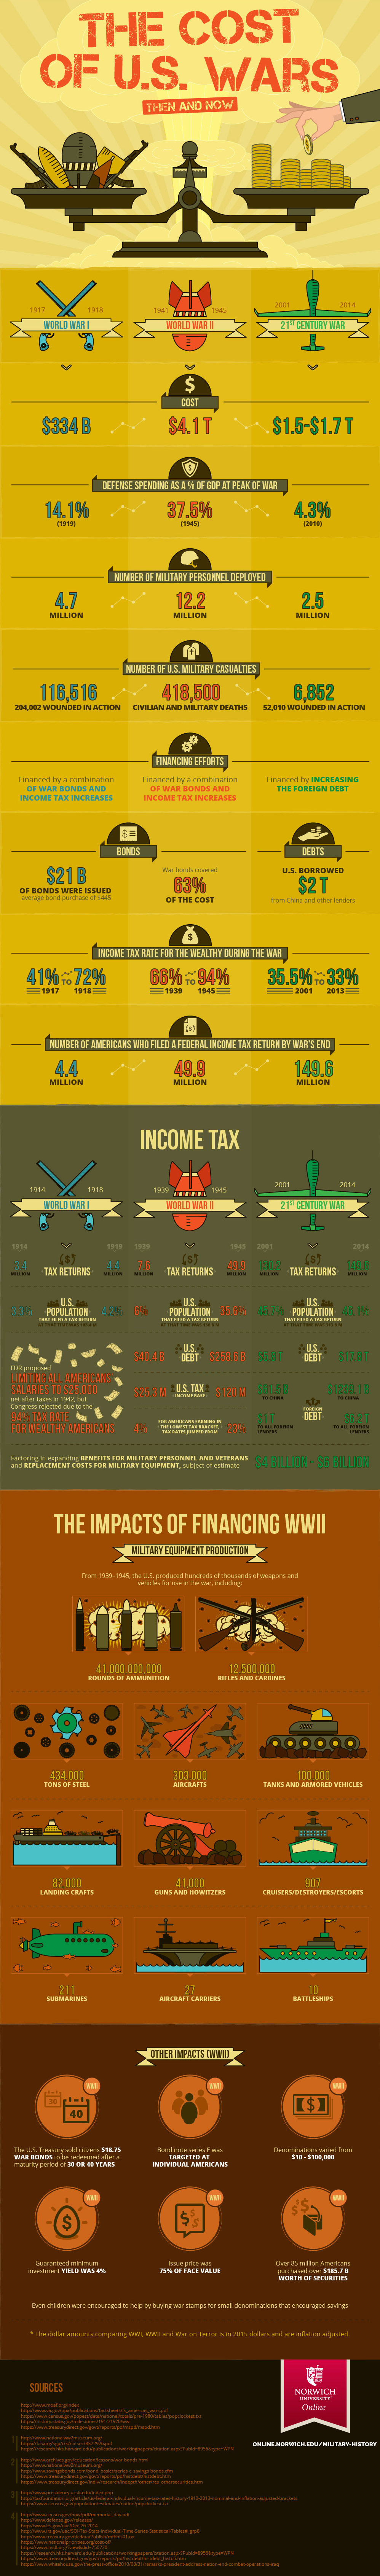 infographic on the history of war expenses